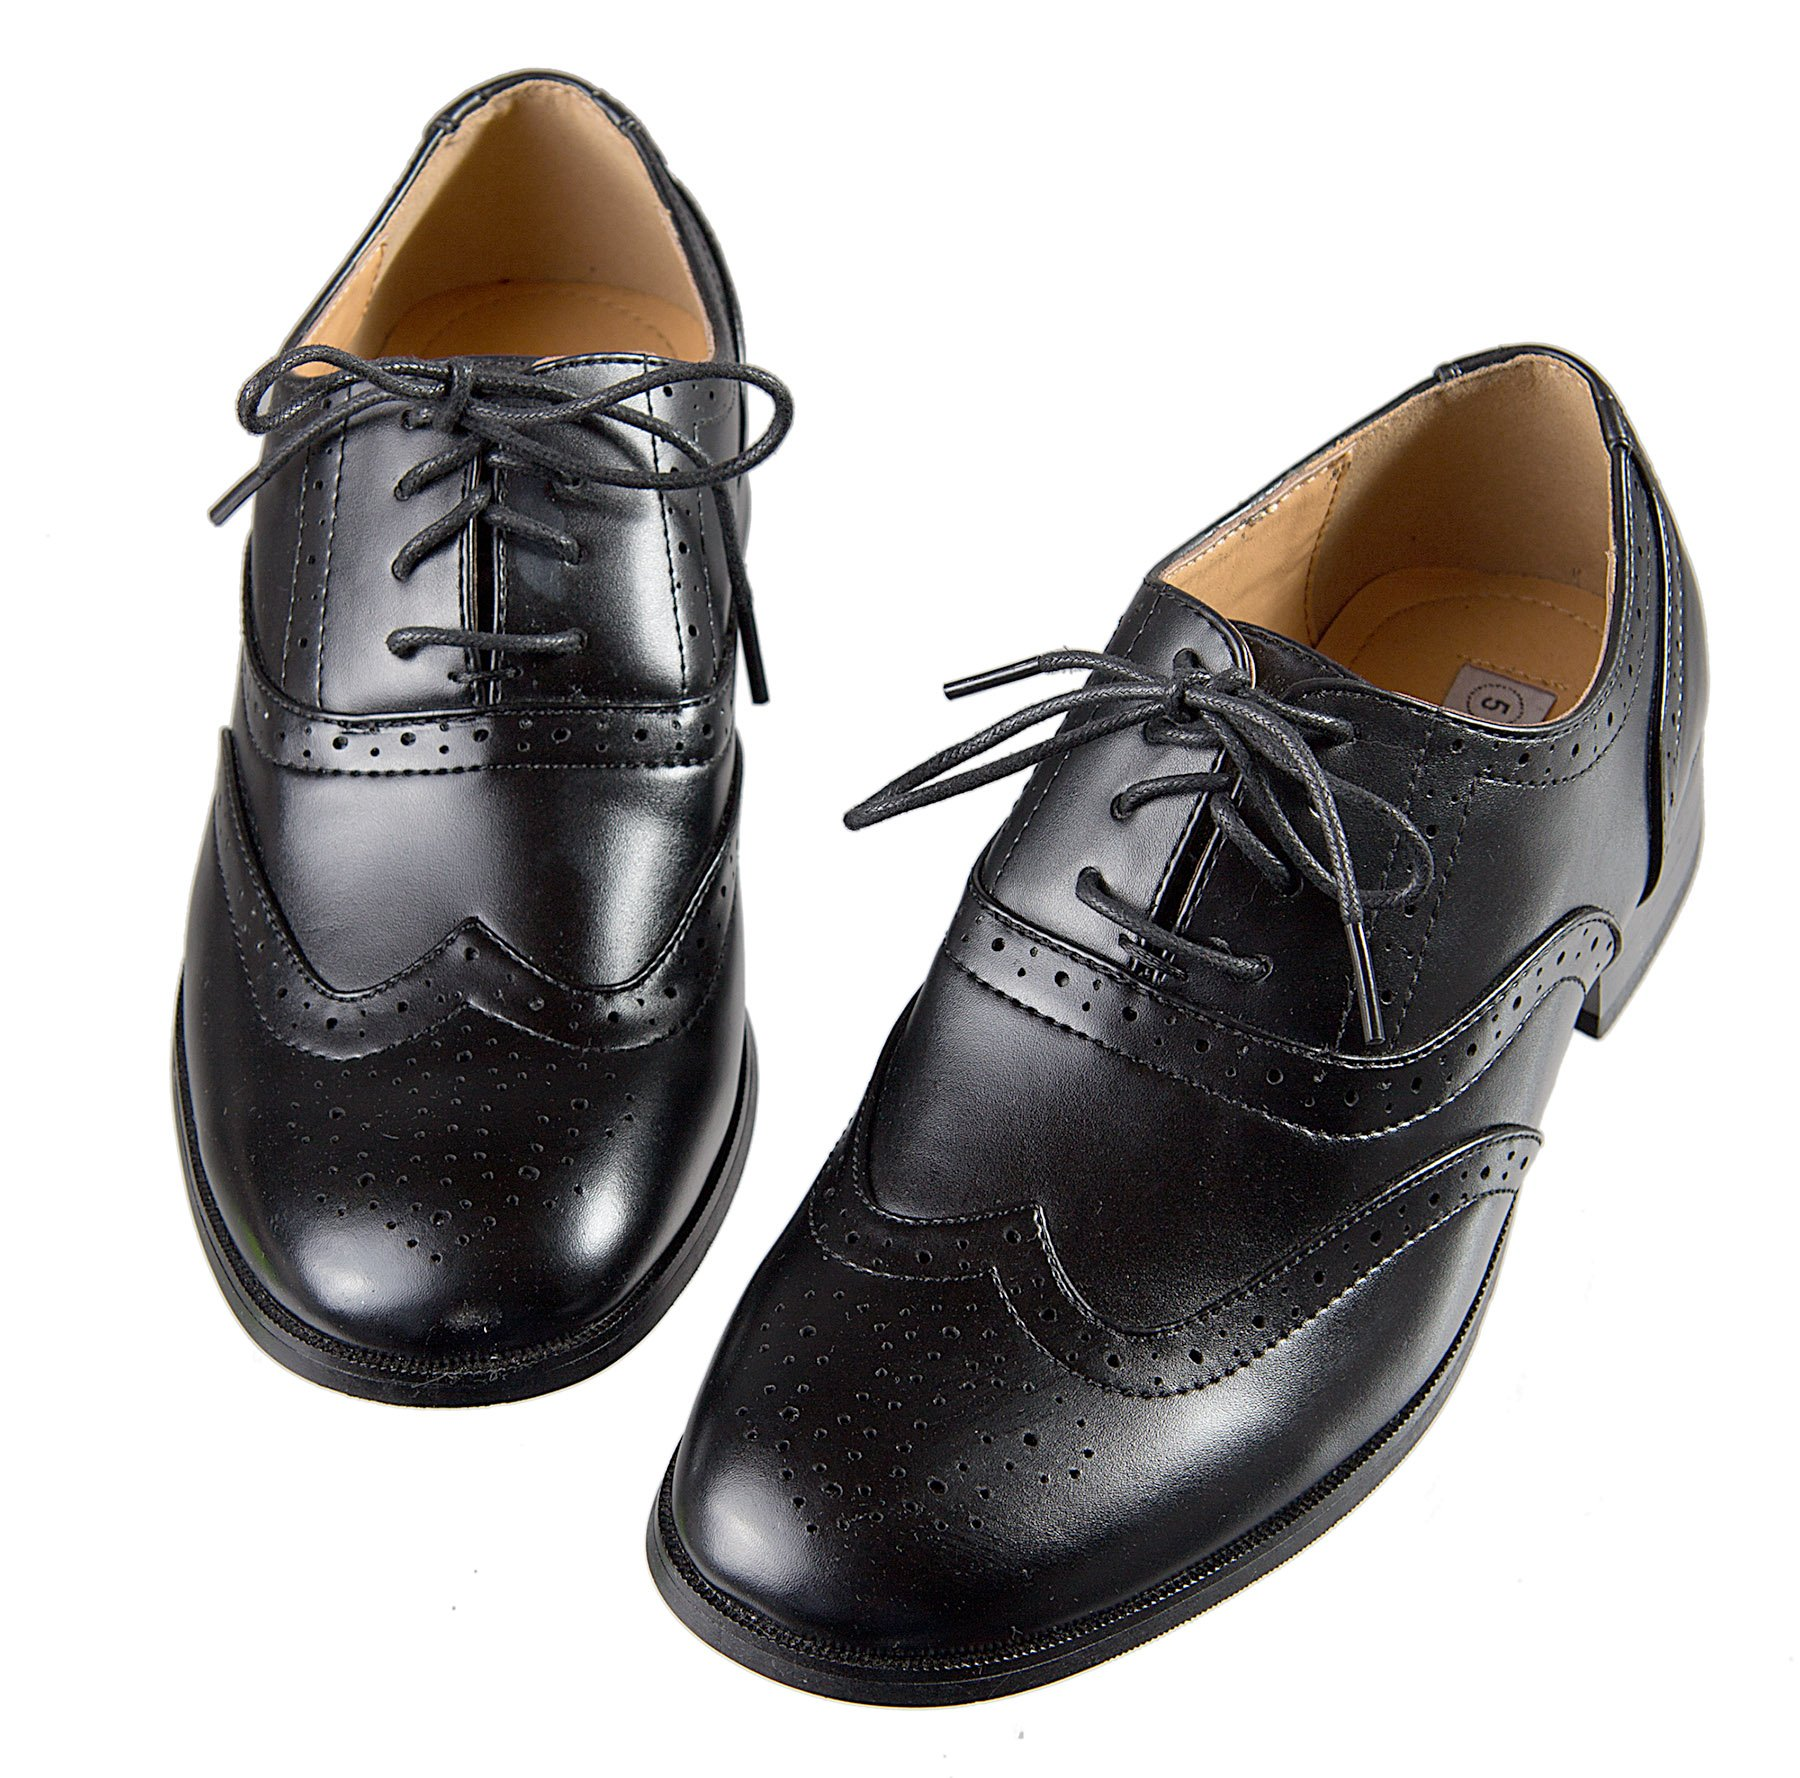 Boys Black Oxford Pattern Lace up Formal Dress Shoes (7 M US Toddler)